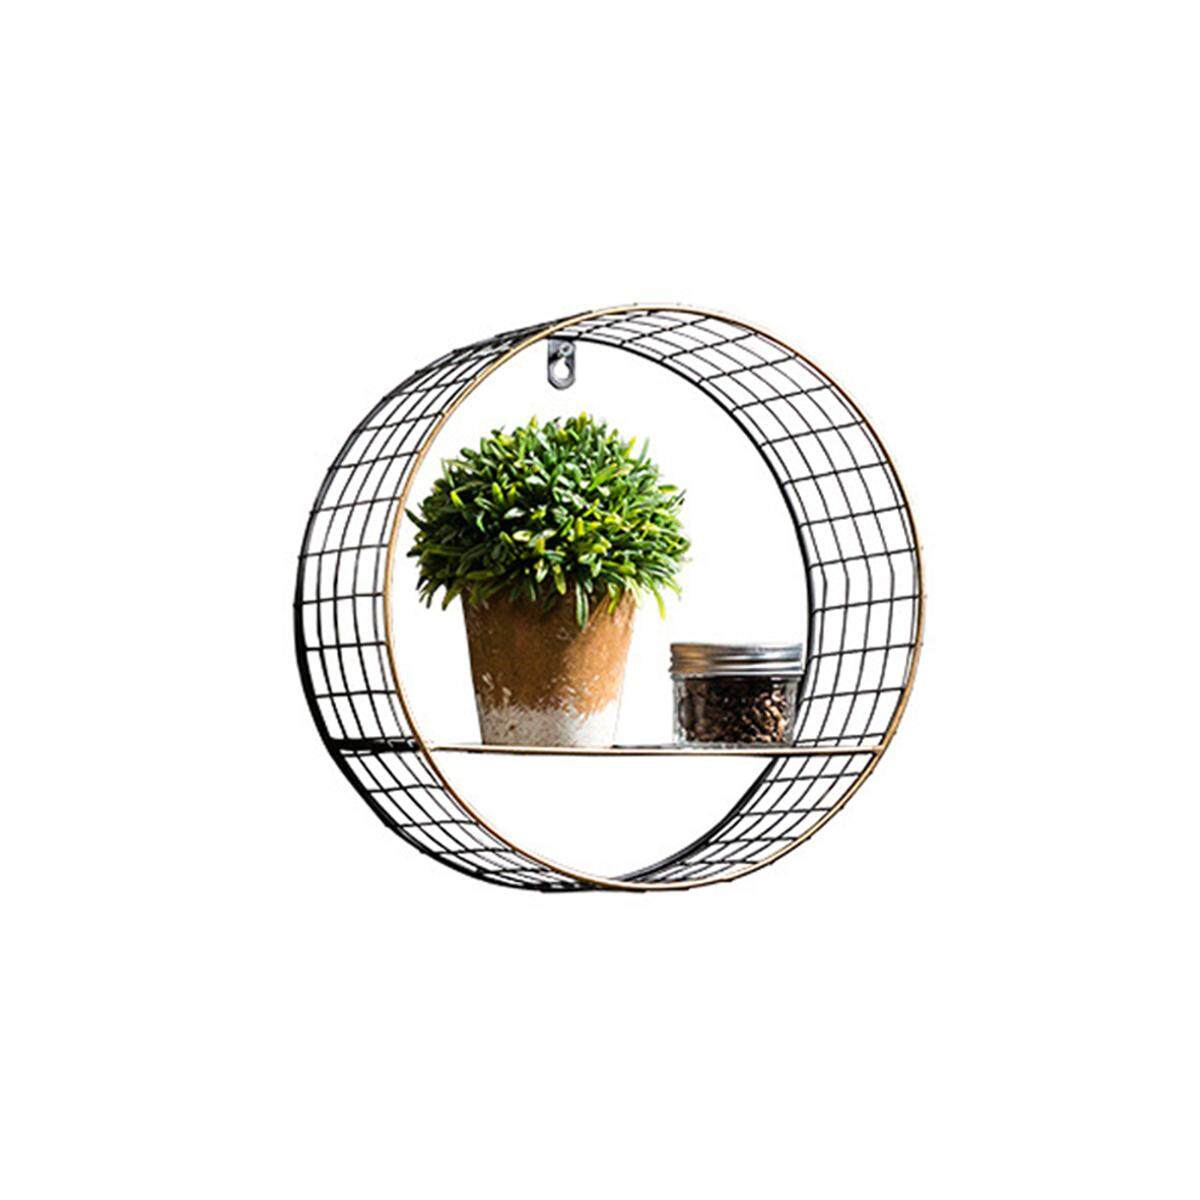 Retro Industrial Metal Wall-Mounted Circular/Round Shelf with Mesh Back